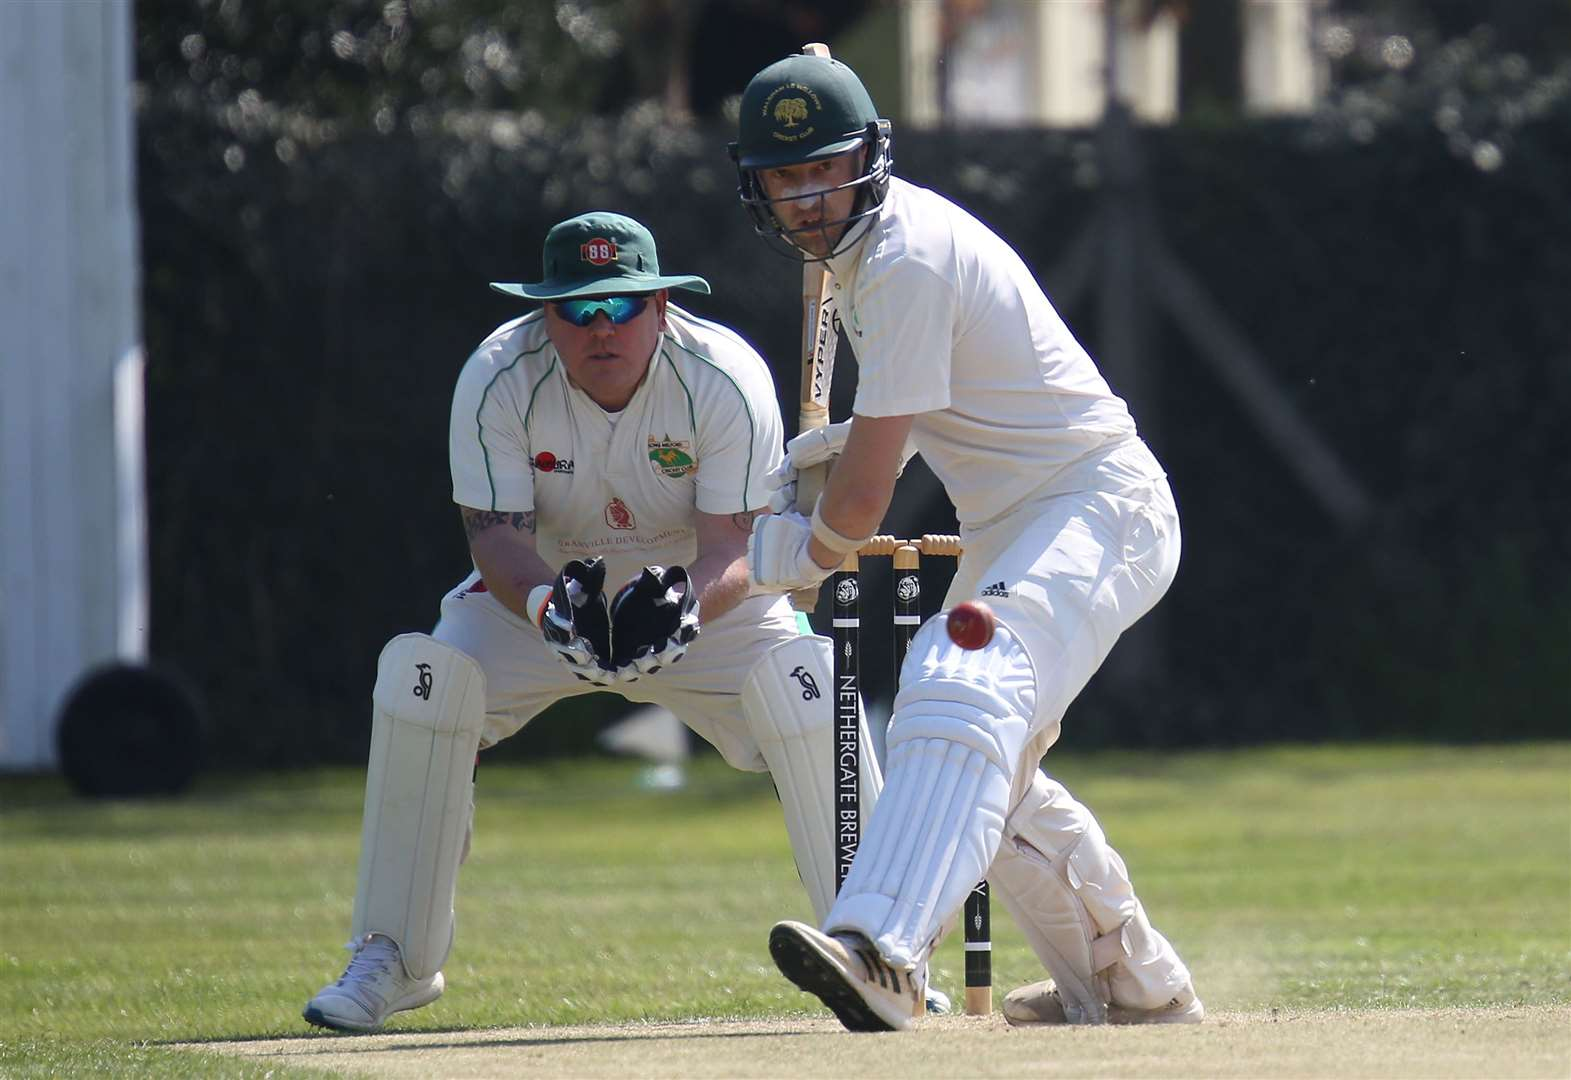 Walsham skipper wants to continue 'good cricket'